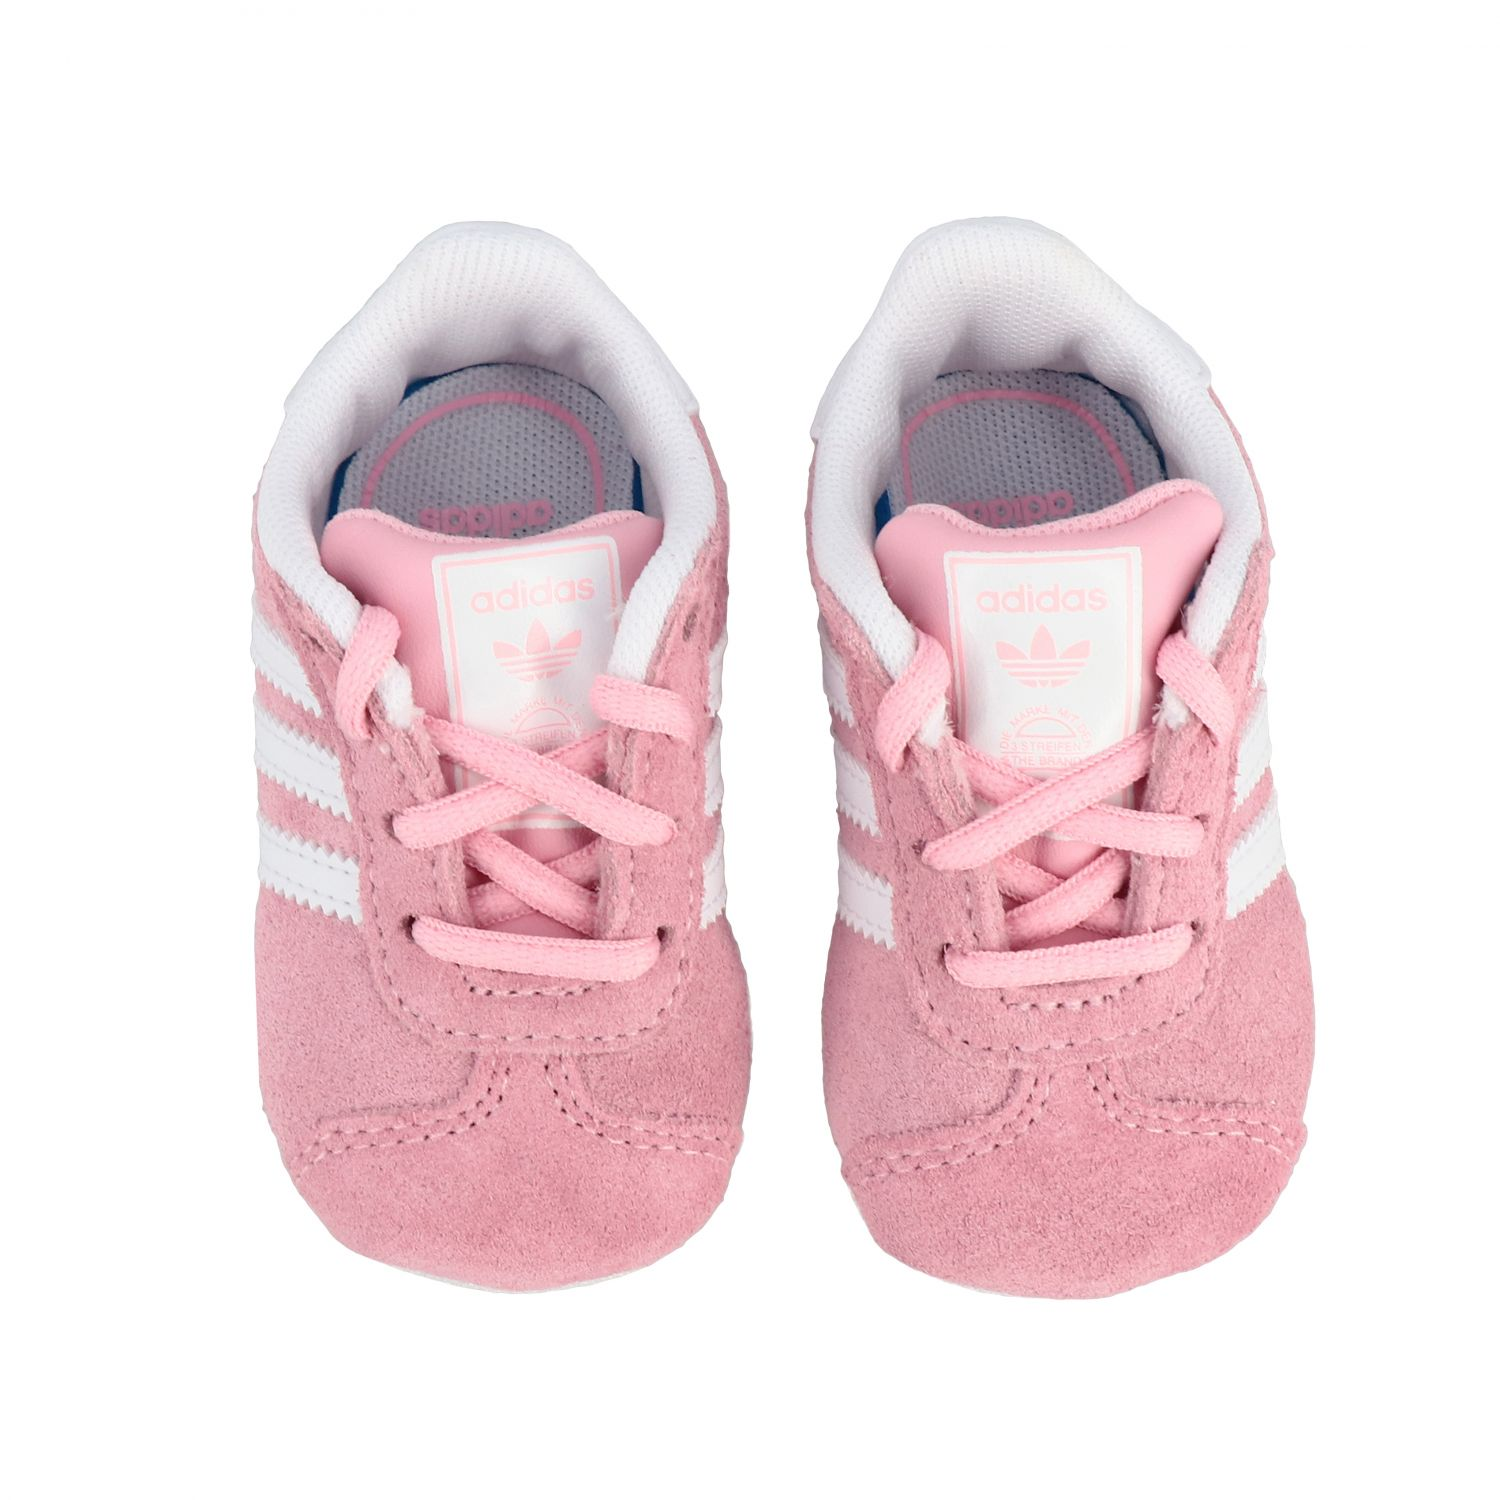 Baskets Gazelle Crib Adidas Originals en daim et cuir rose 3